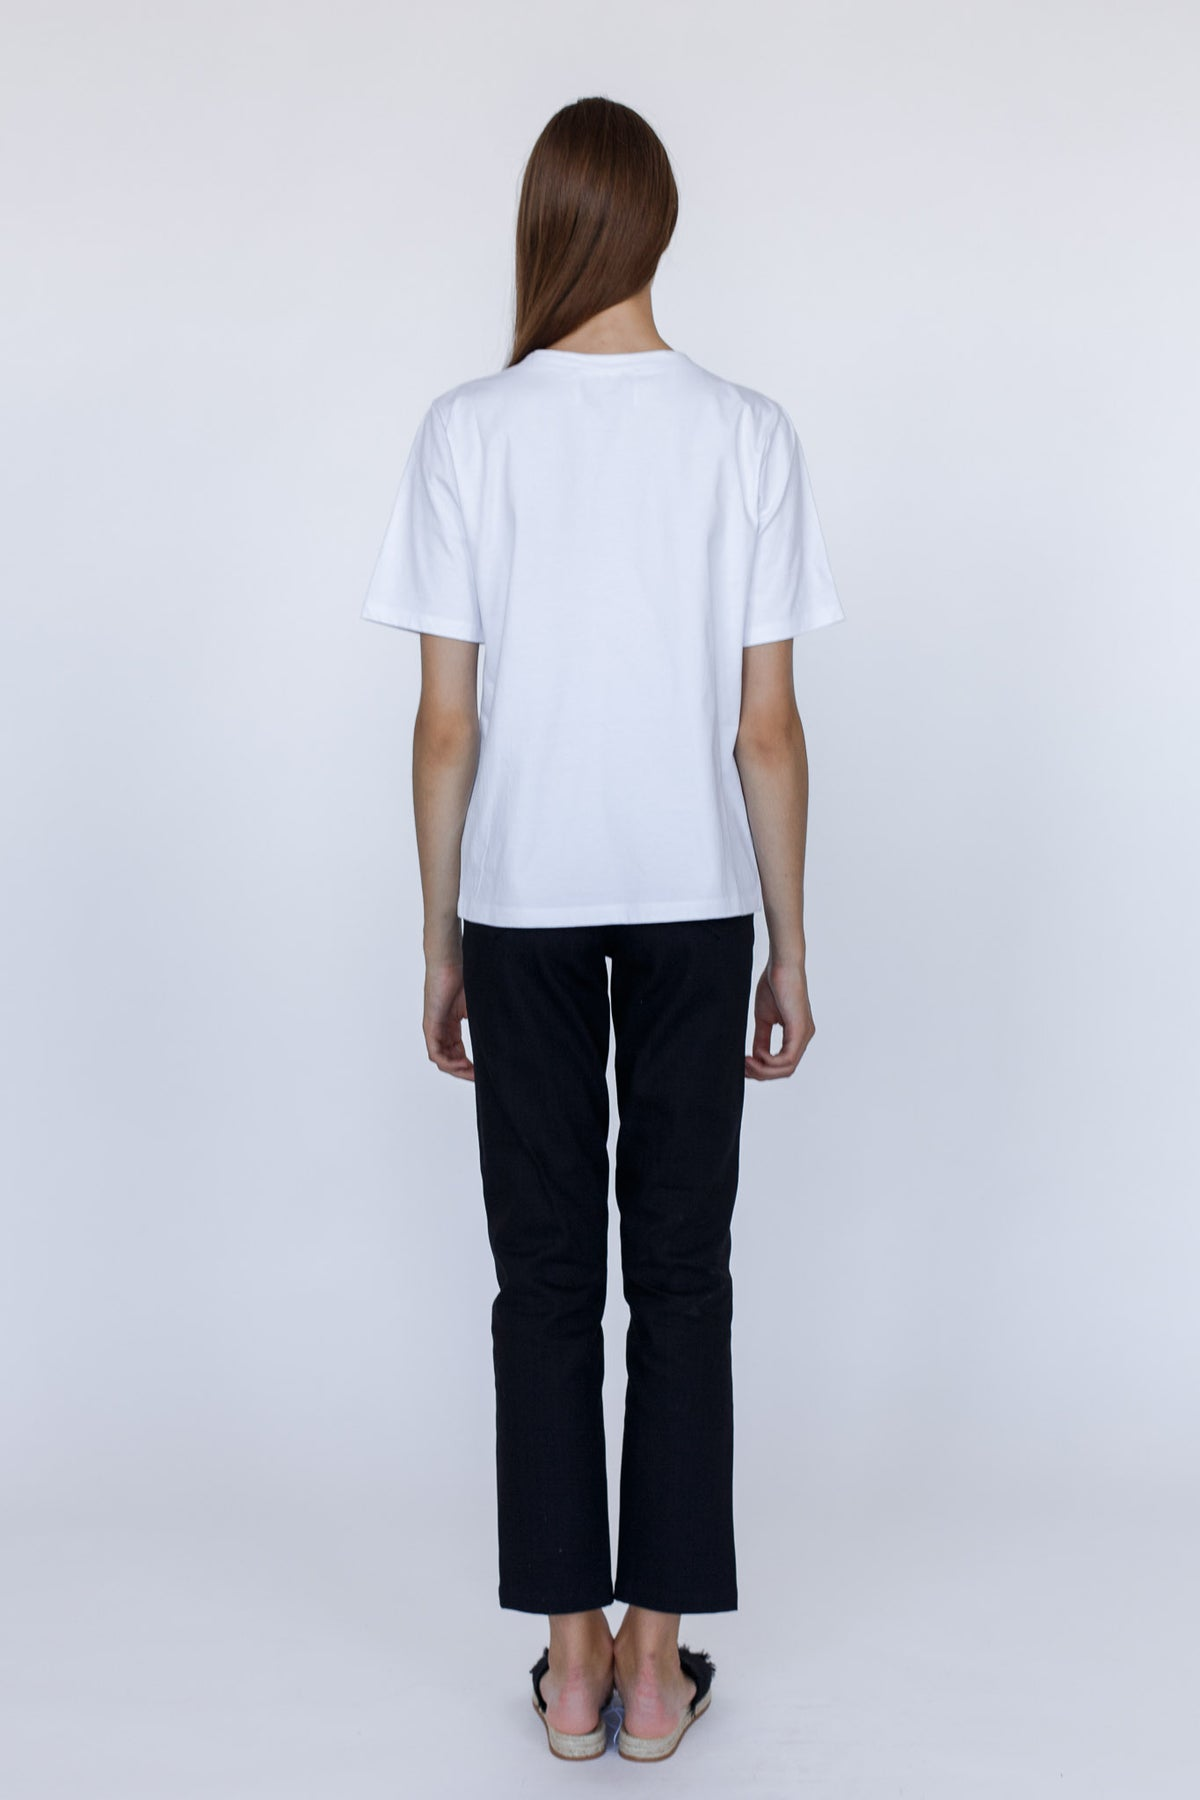 Oversize-cotton-white-t-shirt-quote-evil-look-kind-soul-Le-SLAP-clothing.jpg